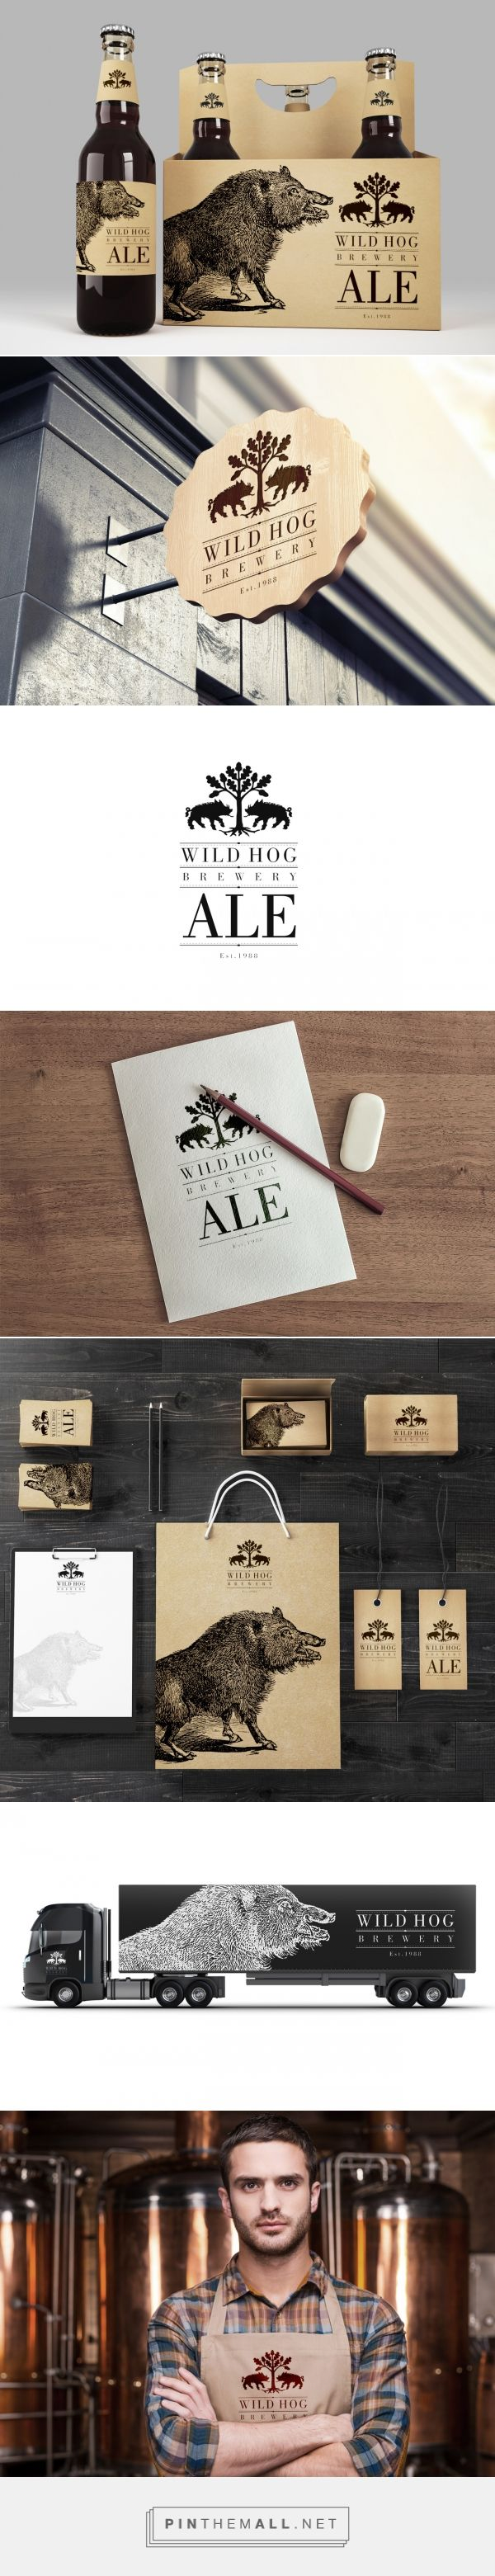 Wild Hog Brewery Branding and Packaging Design by MAISON D'IDÉE curated by Packaging Diva PD. Aim of this design was to avoid any typical beer-like clichés when it comes to brewery logo design or packaging itself.